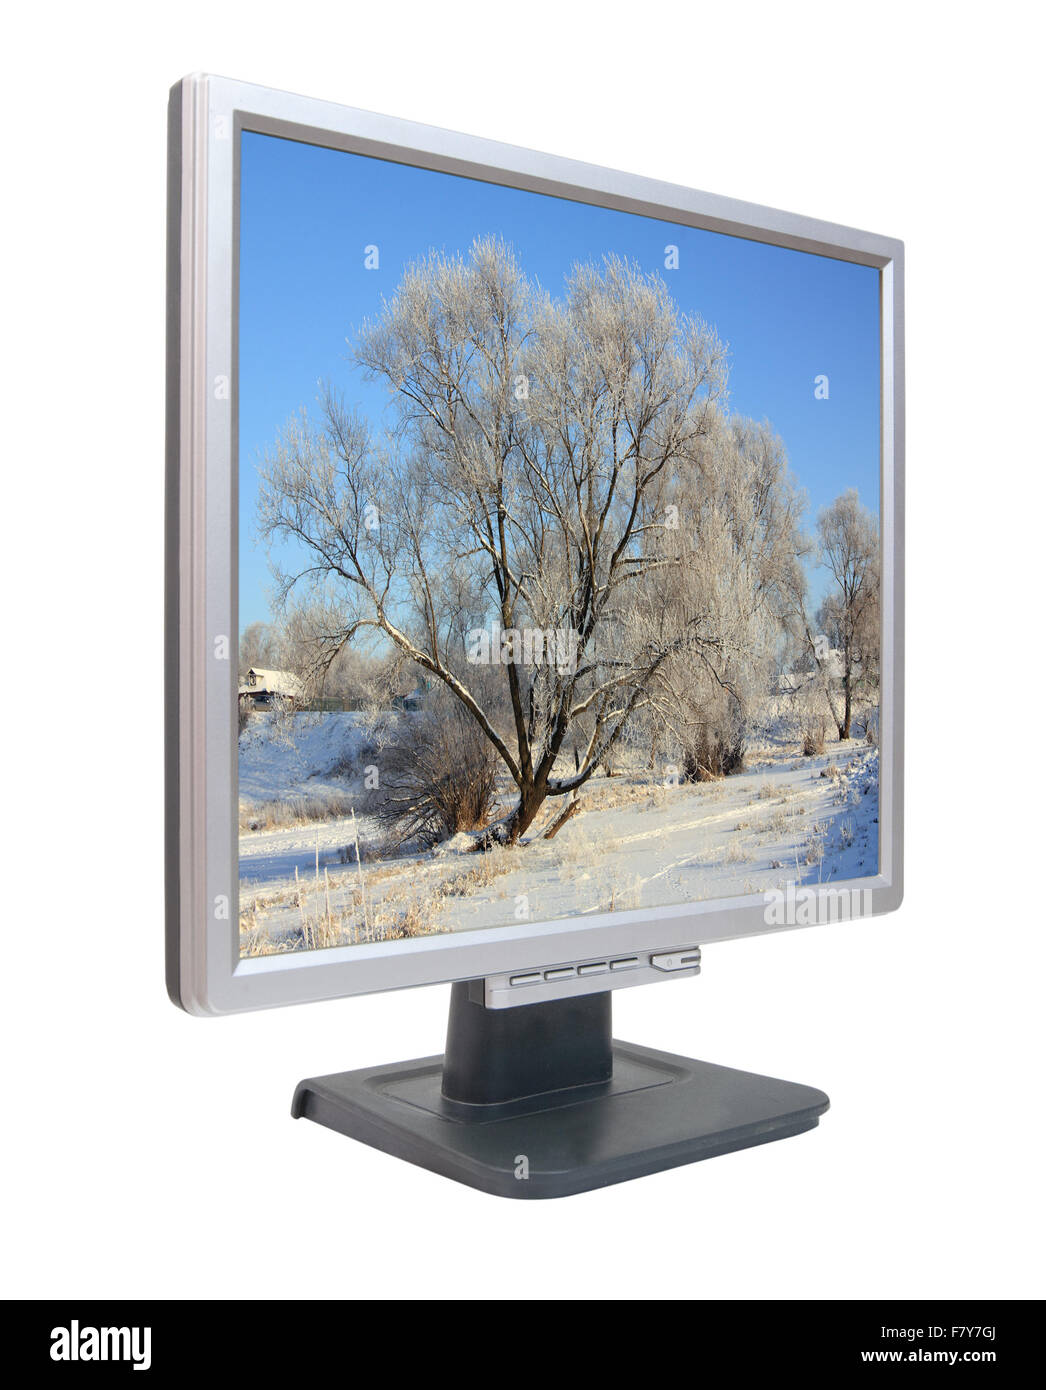 Lcd monitor with winter nature on wallpaper. On screen my photo - Stock Image